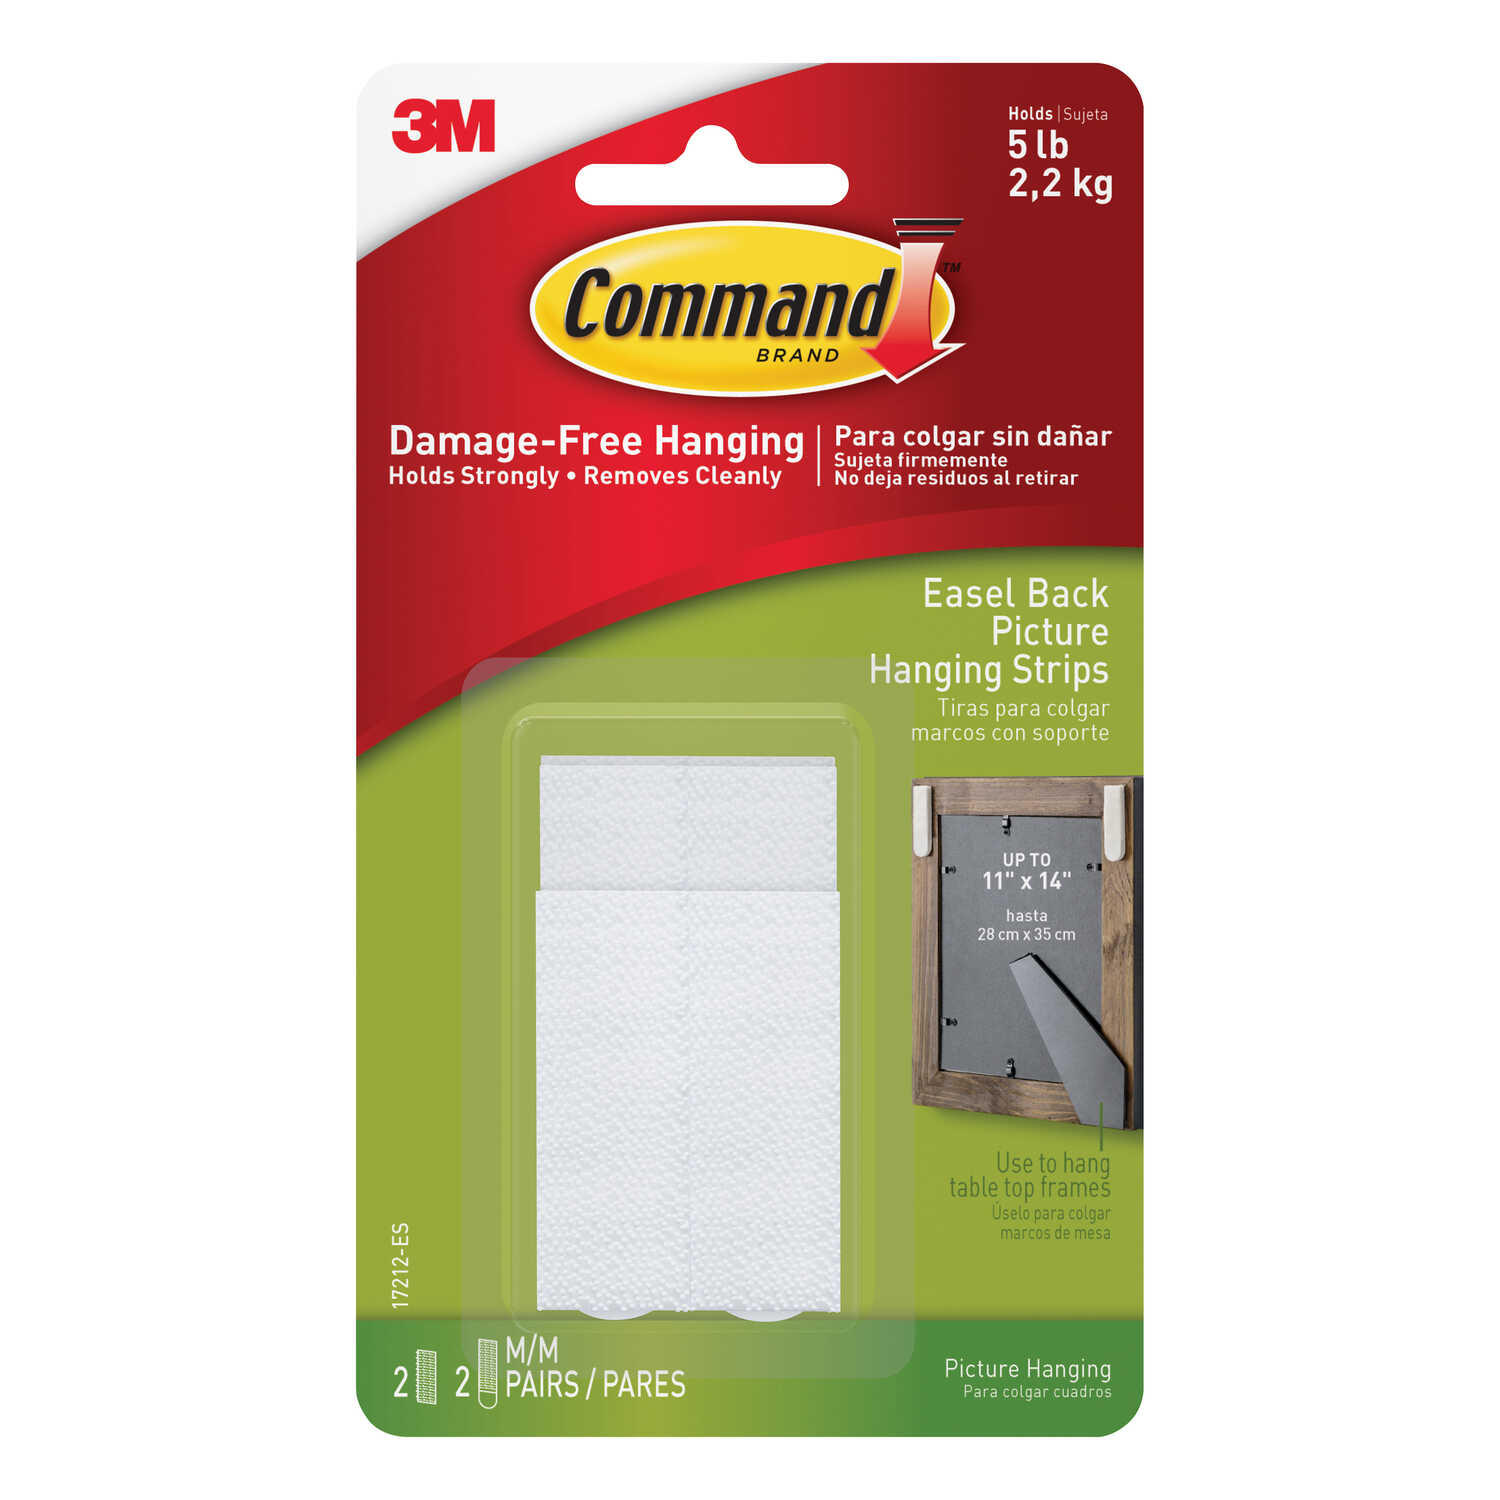 3M  Command  Medium  Easel Back Picture Hanging  Foam  4 pk 5 lb. White  Easel-Backed Picture Hangin